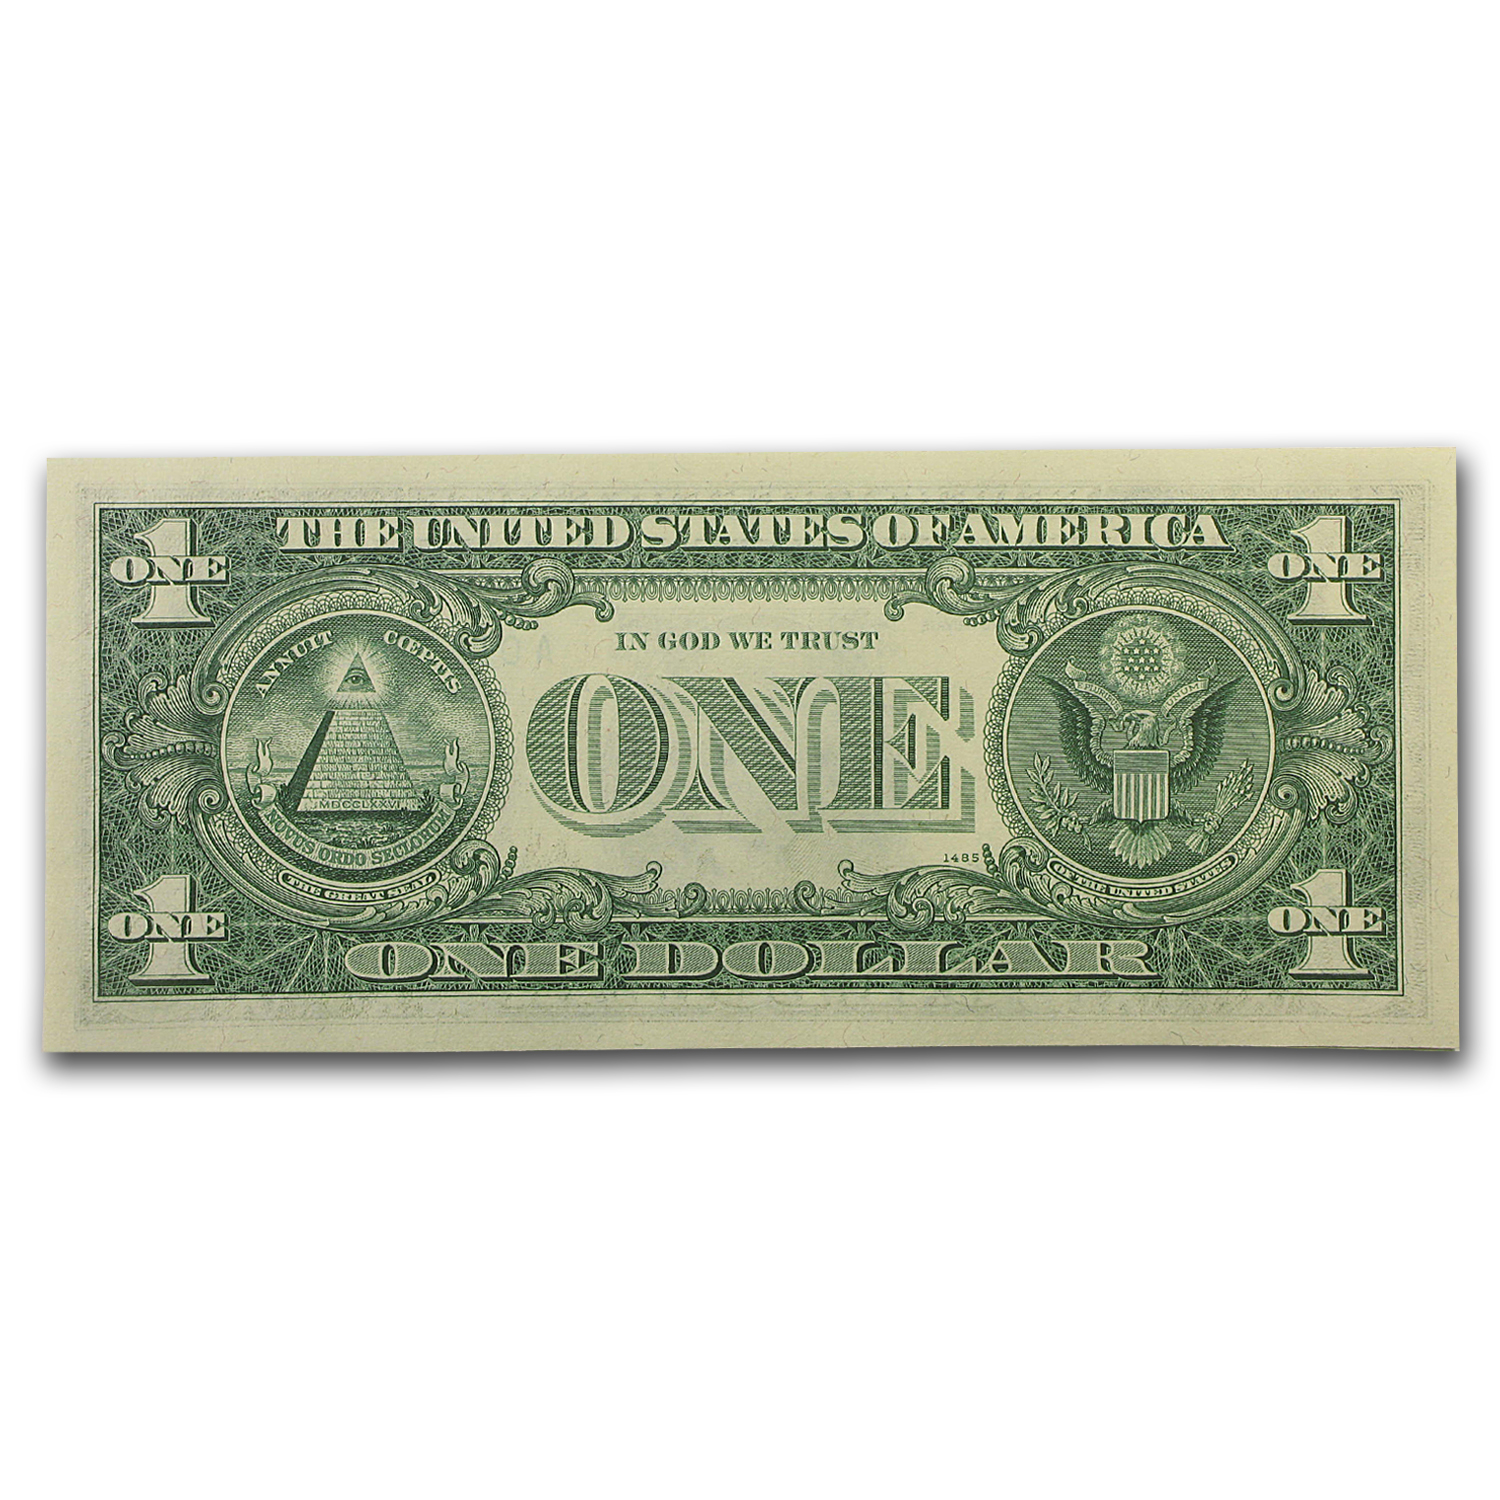 1969-B* (A-Boston) $1.00 FRN CU (Star Note, Consecutive 100-Pack)